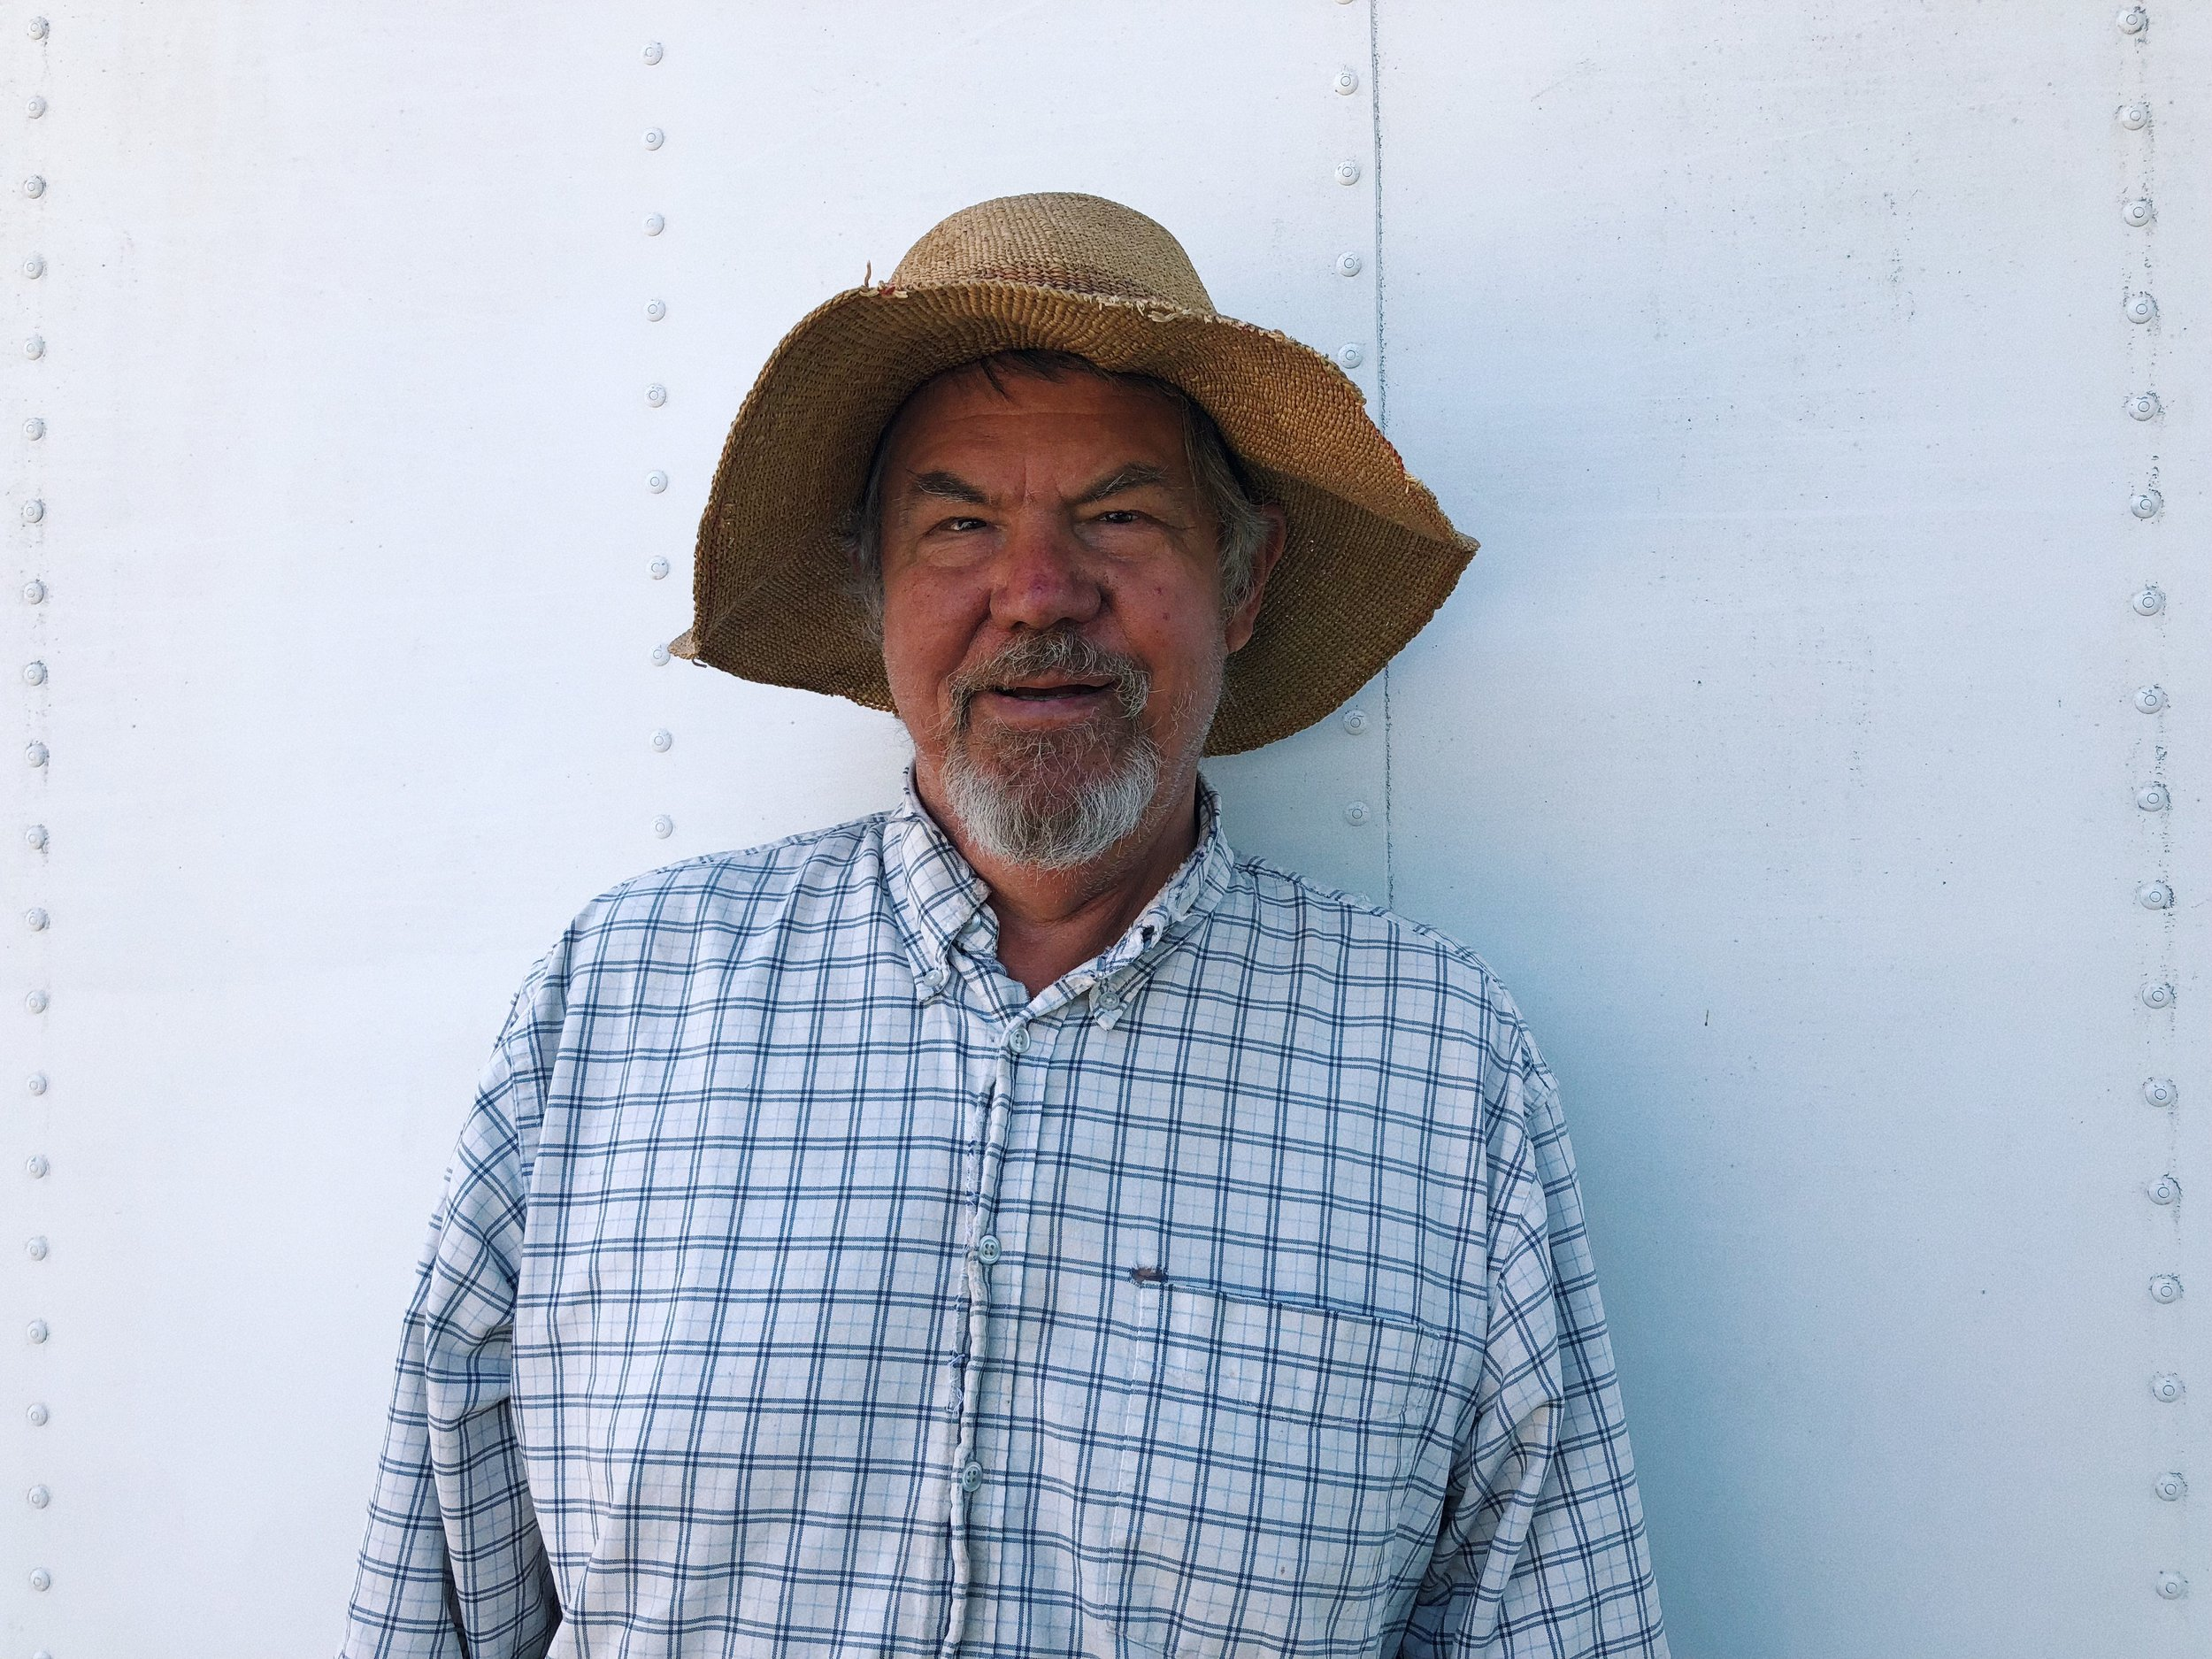 This is Steve Sprinkels. I'm not exactly sure what his farm name is called but he is the farmer for Farmer and the Cook the famous restaurant in Ojai. Steve is known for having incredibly good looking produce, and healthy soil.